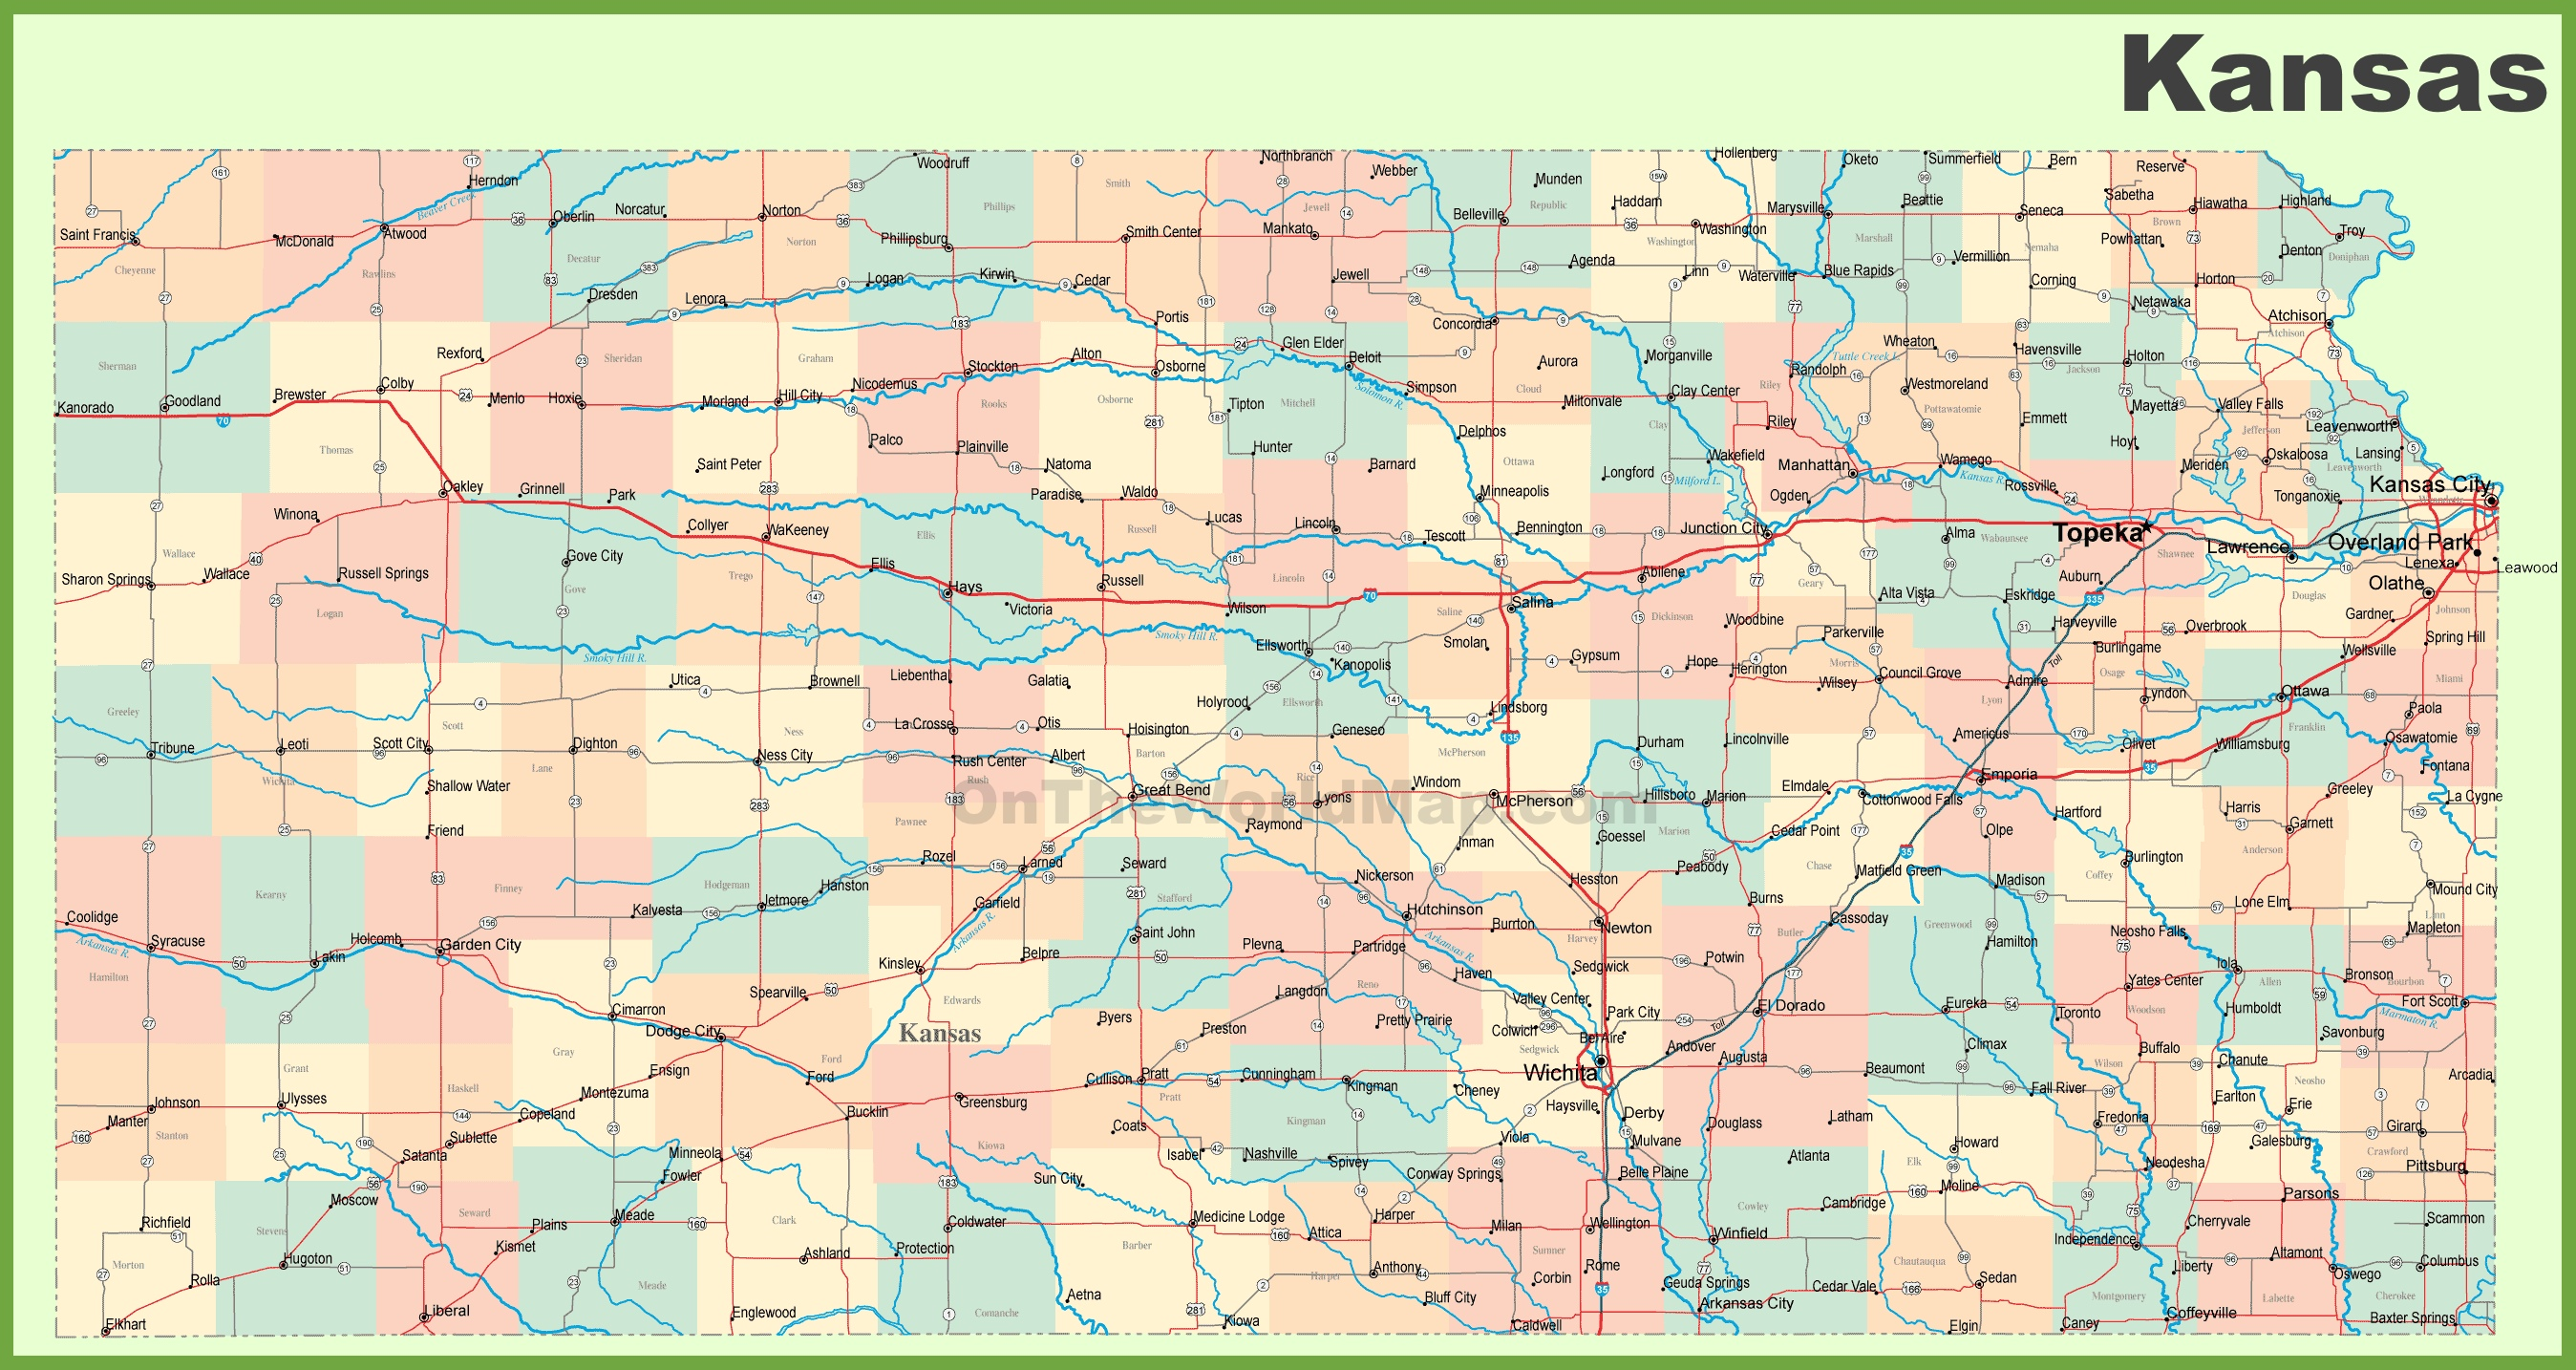 Kansas State Maps | USA | Maps of Kansas (KS) on missouri road map with cities, kansas major cities, printable map kansas city missouri, usa united states map with cities, road map of massachusetts towns and cities, printable map of wichita ks,